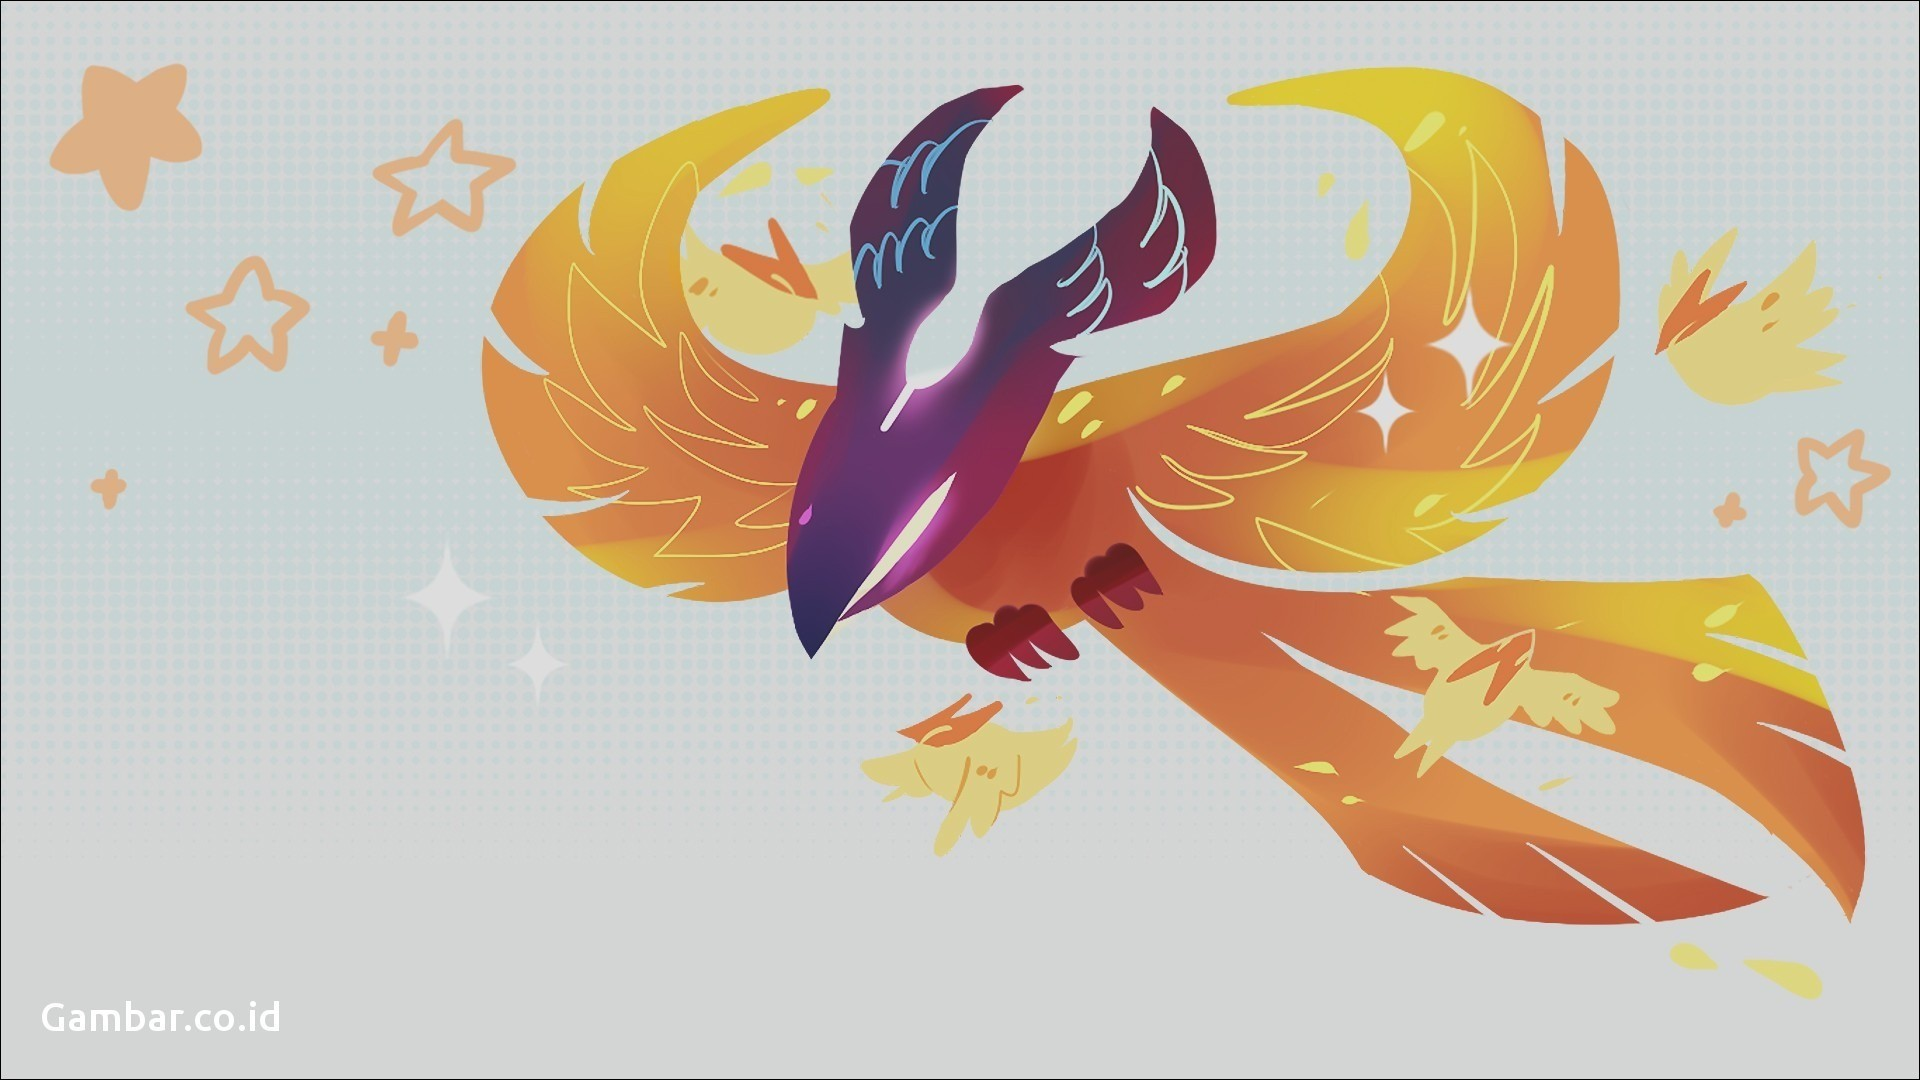 hd wallpaper fresh gambar h wallpapers dota 2 phoenix 0d wallpaper